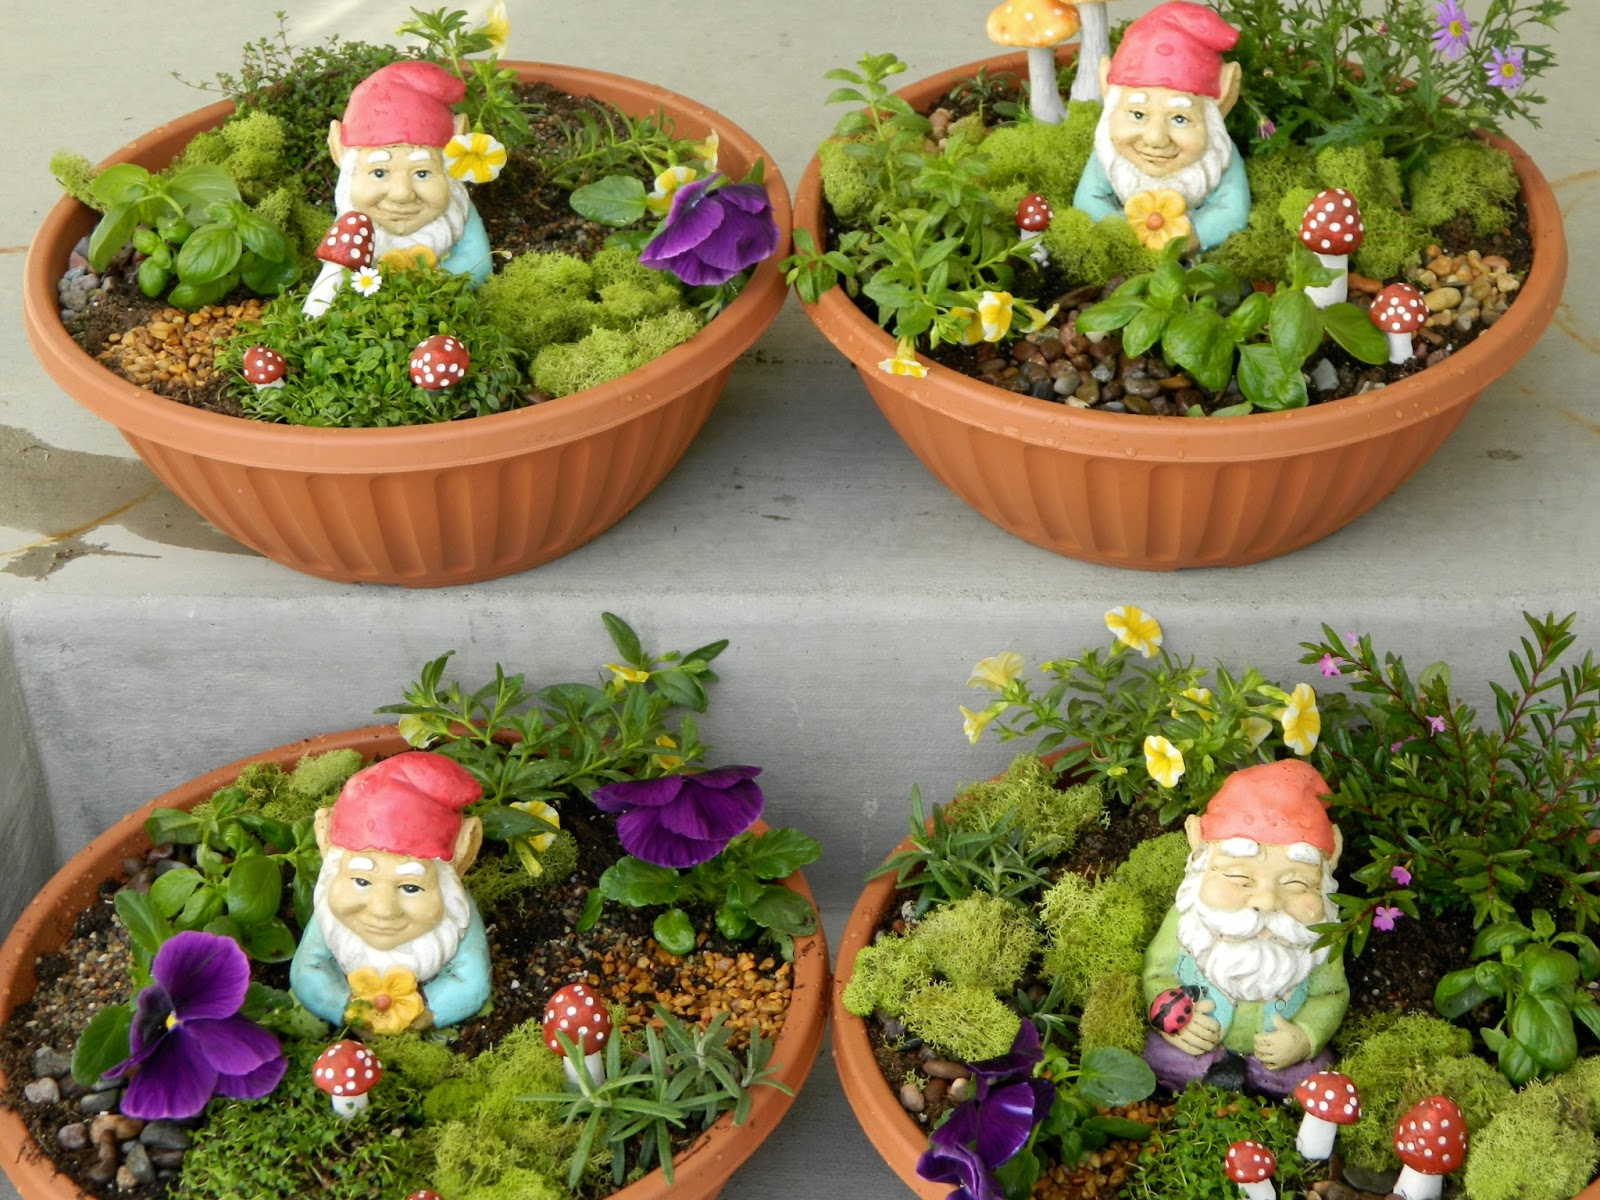 Garden Gnome Ideas ~ Fine Woodworking Blueprint